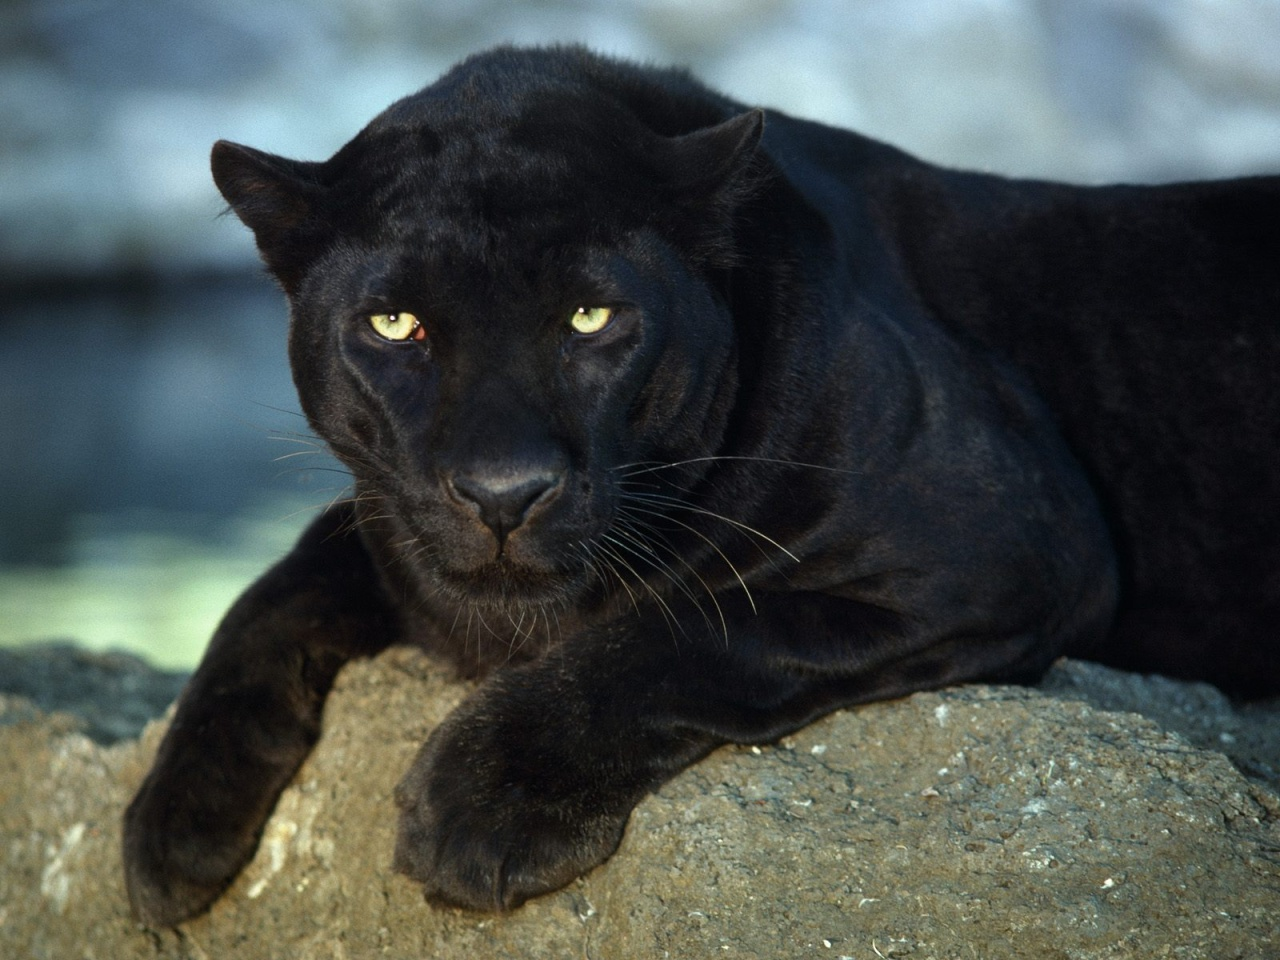 World Images Gallery: Black Panther - photo#2